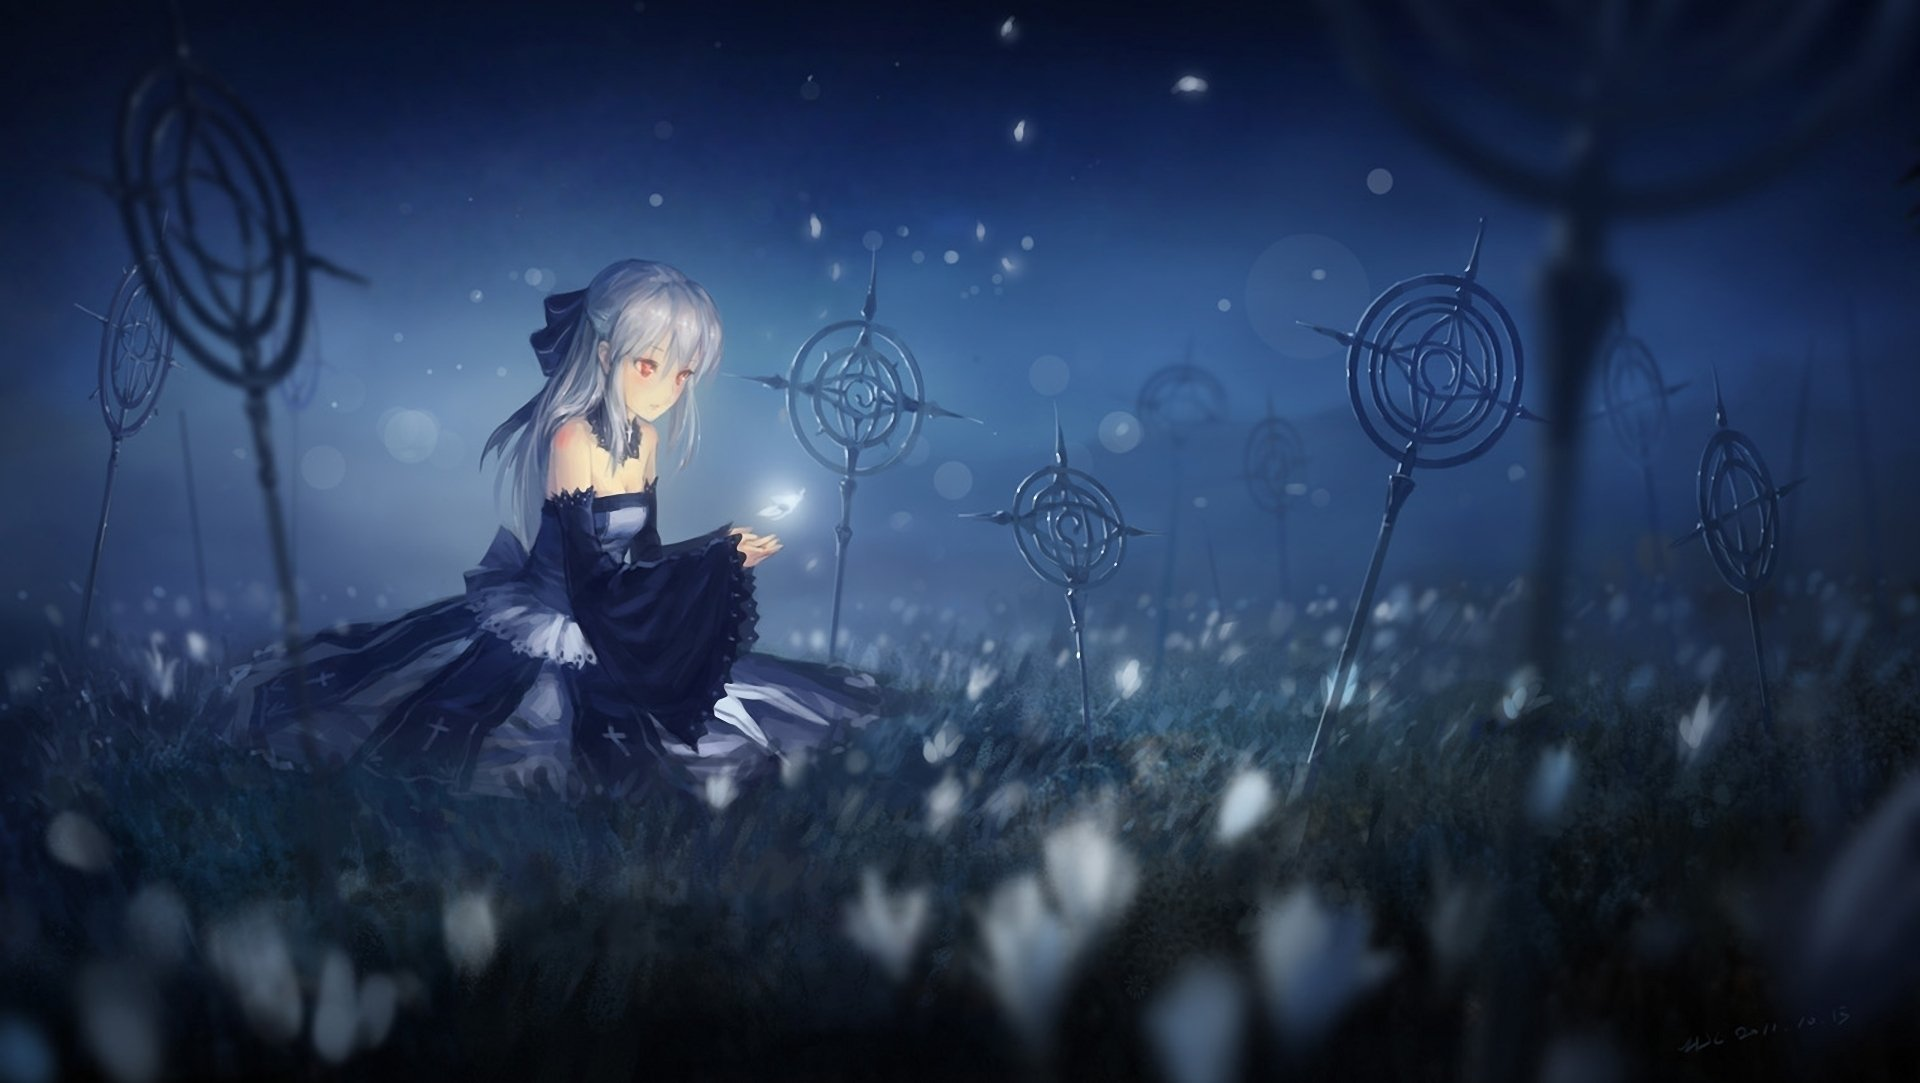 Pixiv fantasia hd wallpaper background image 1920x1083 for Sfondi spazio hd